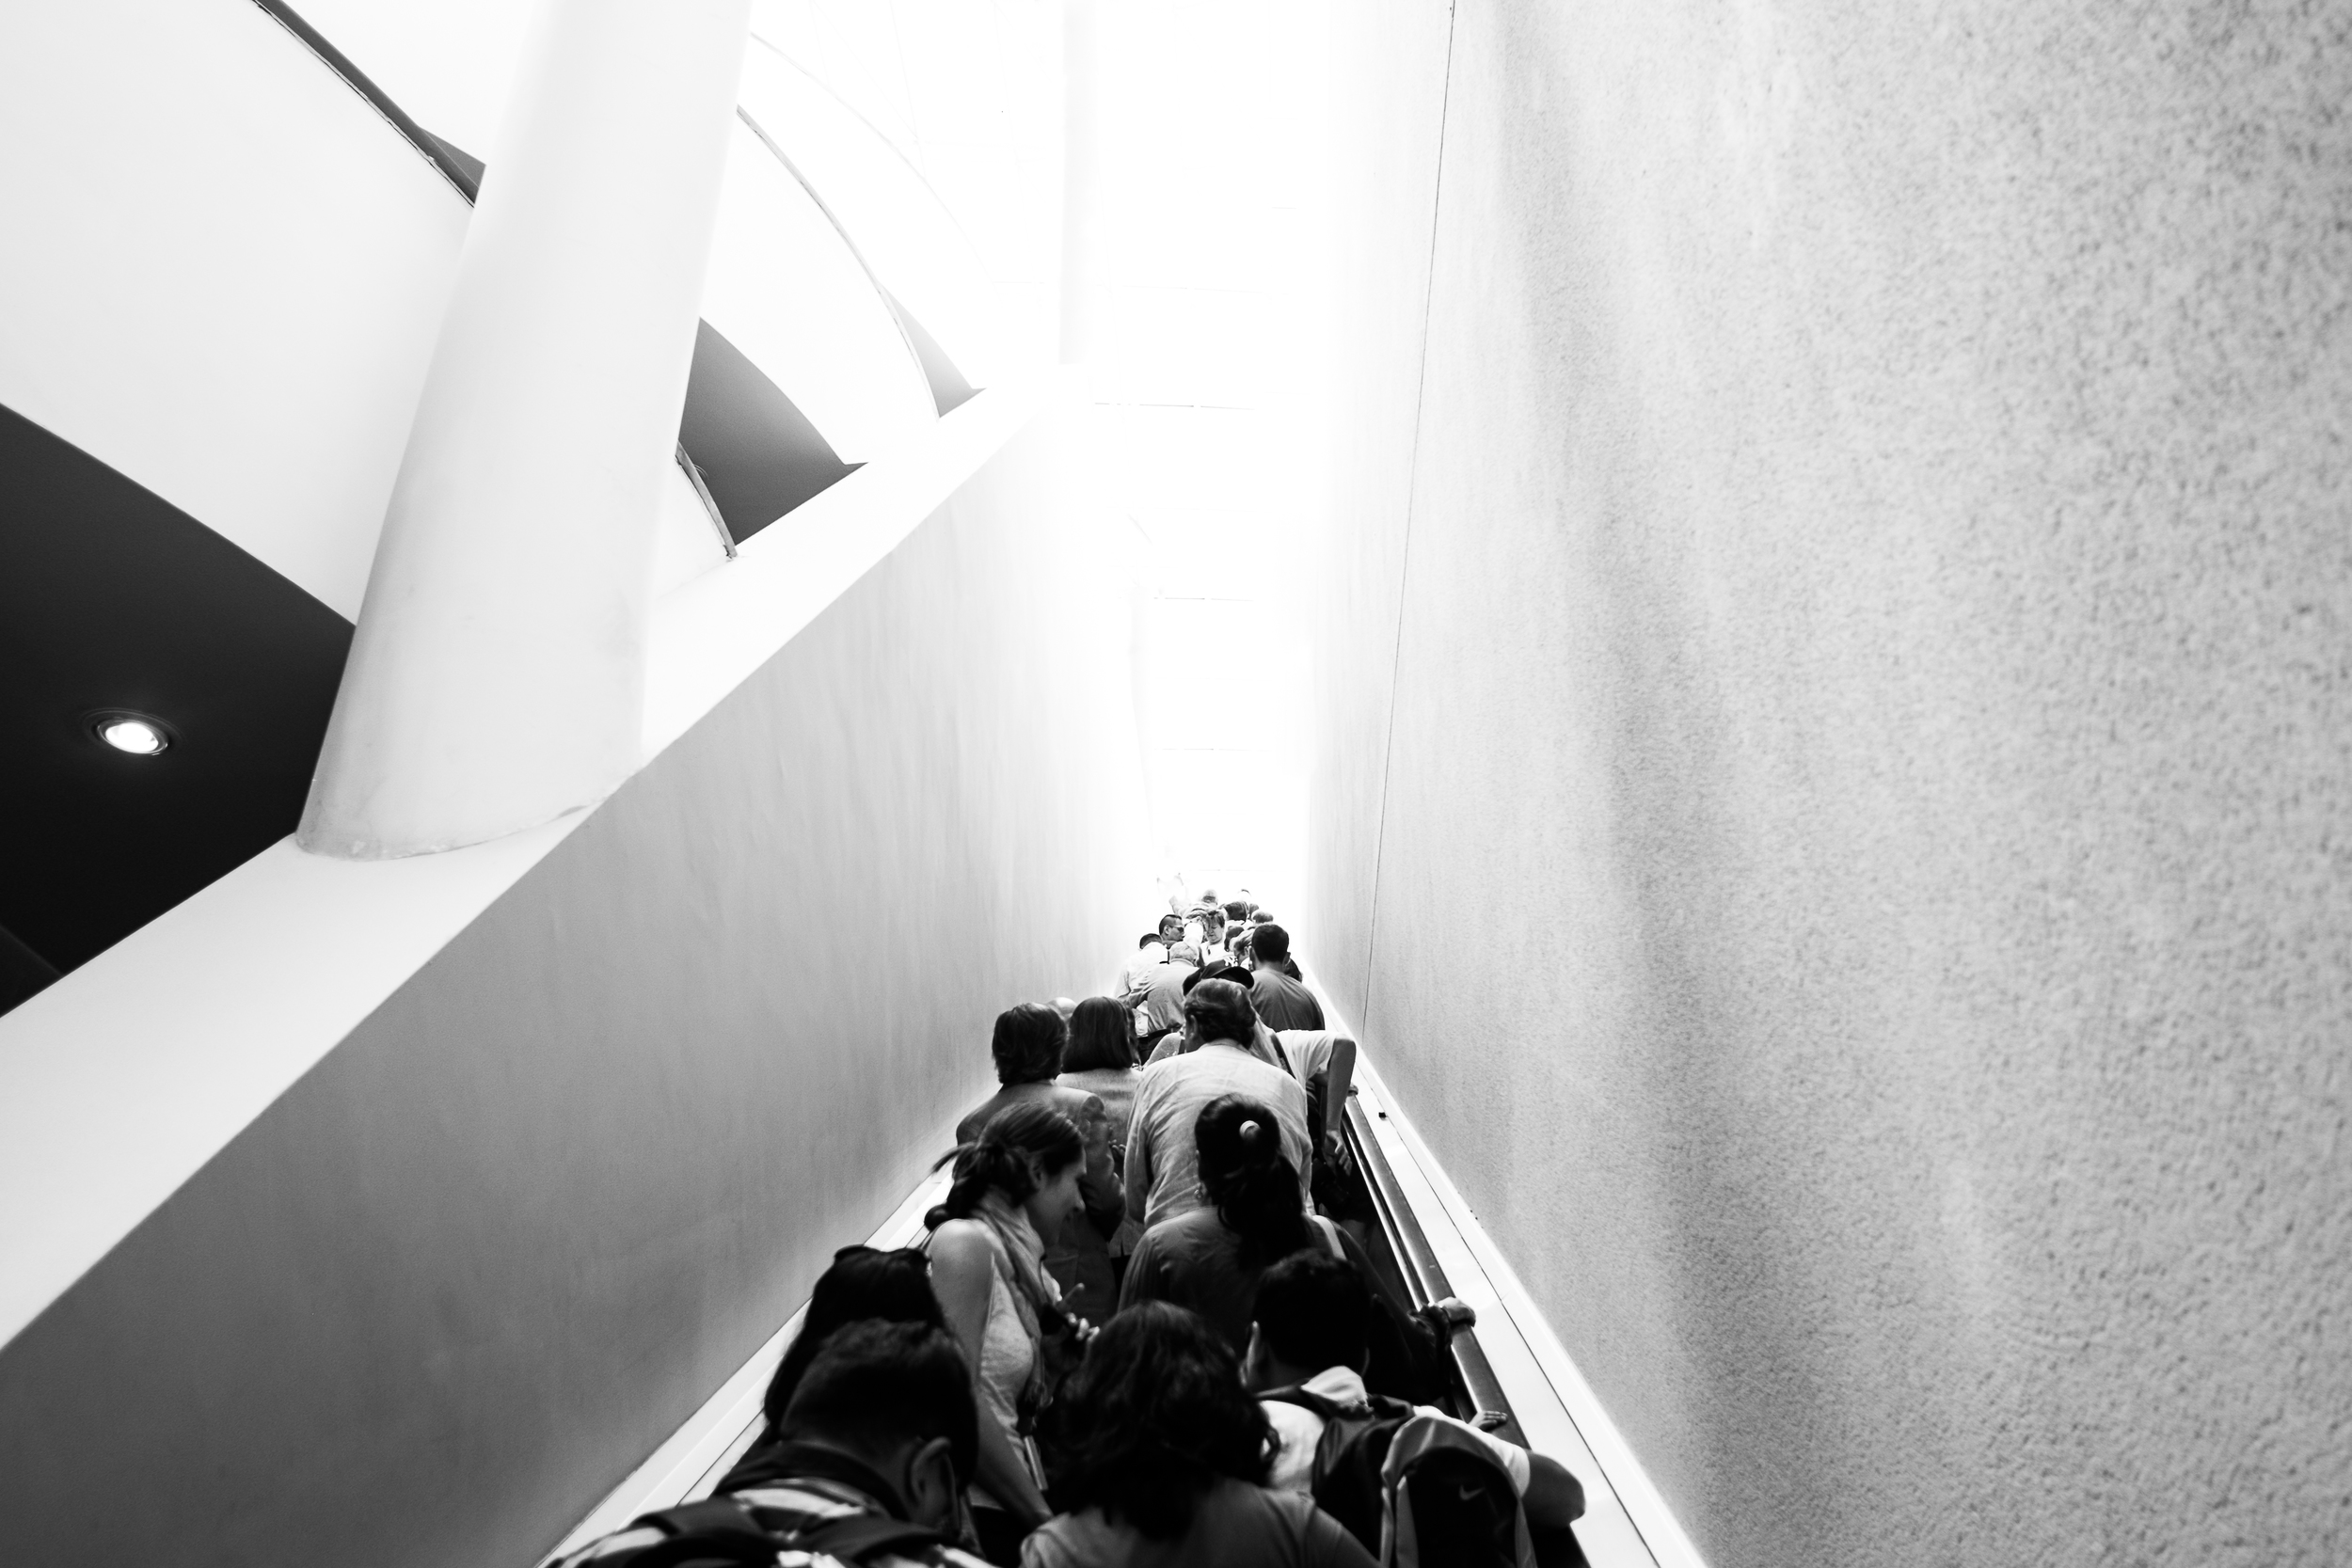 A sea of humanity flowed with us entering the museum.